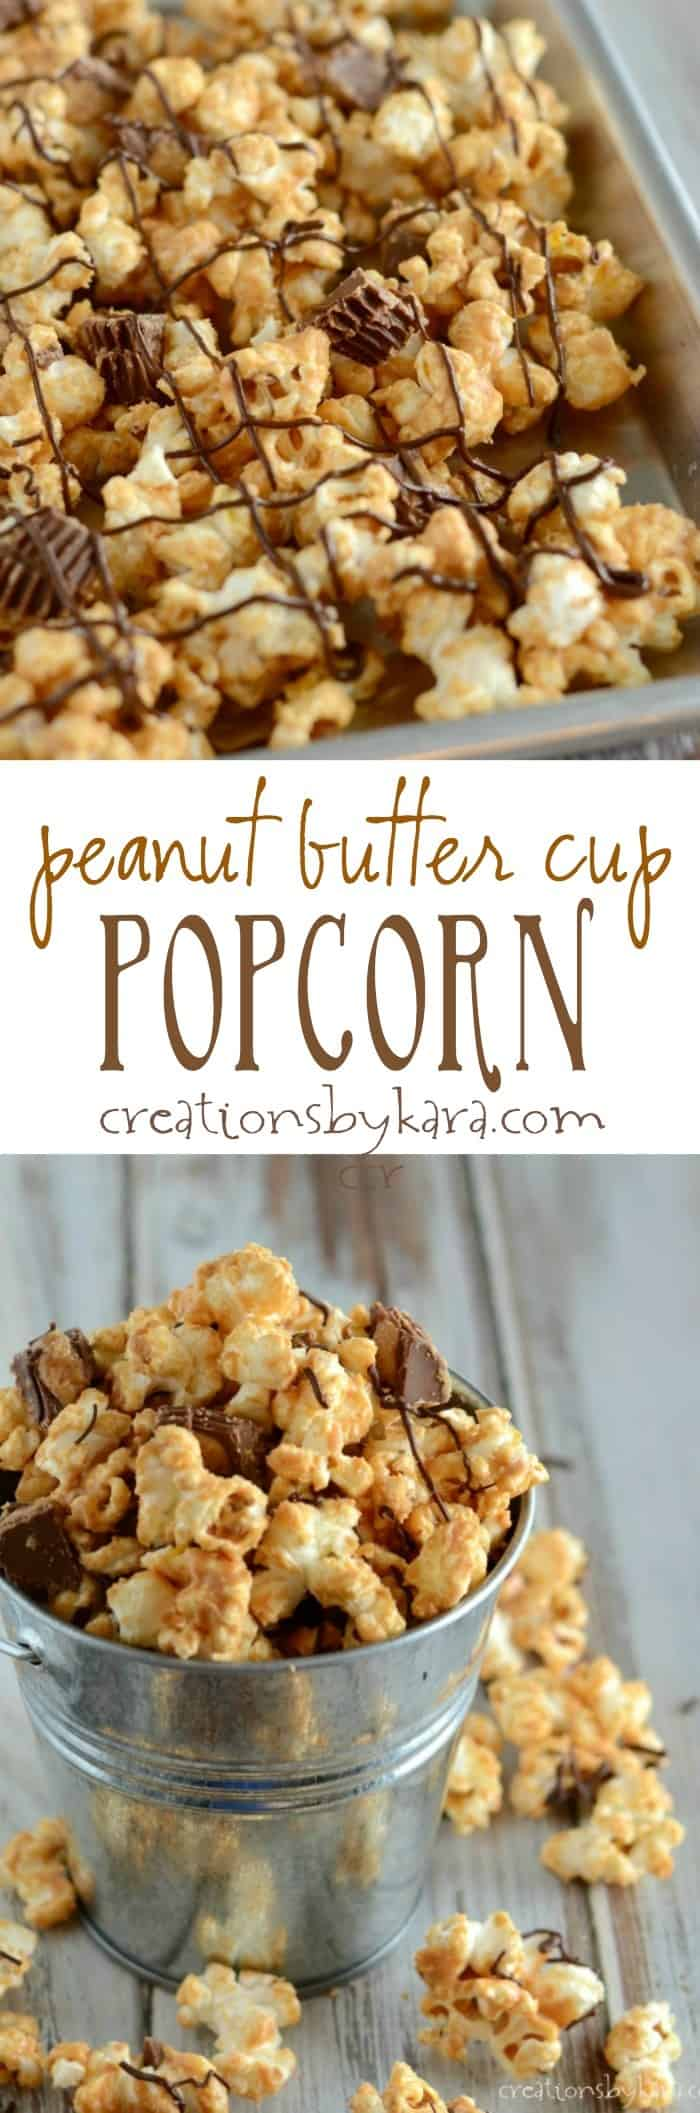 This peanut butter cup popcorn is an easy and tasty snack!